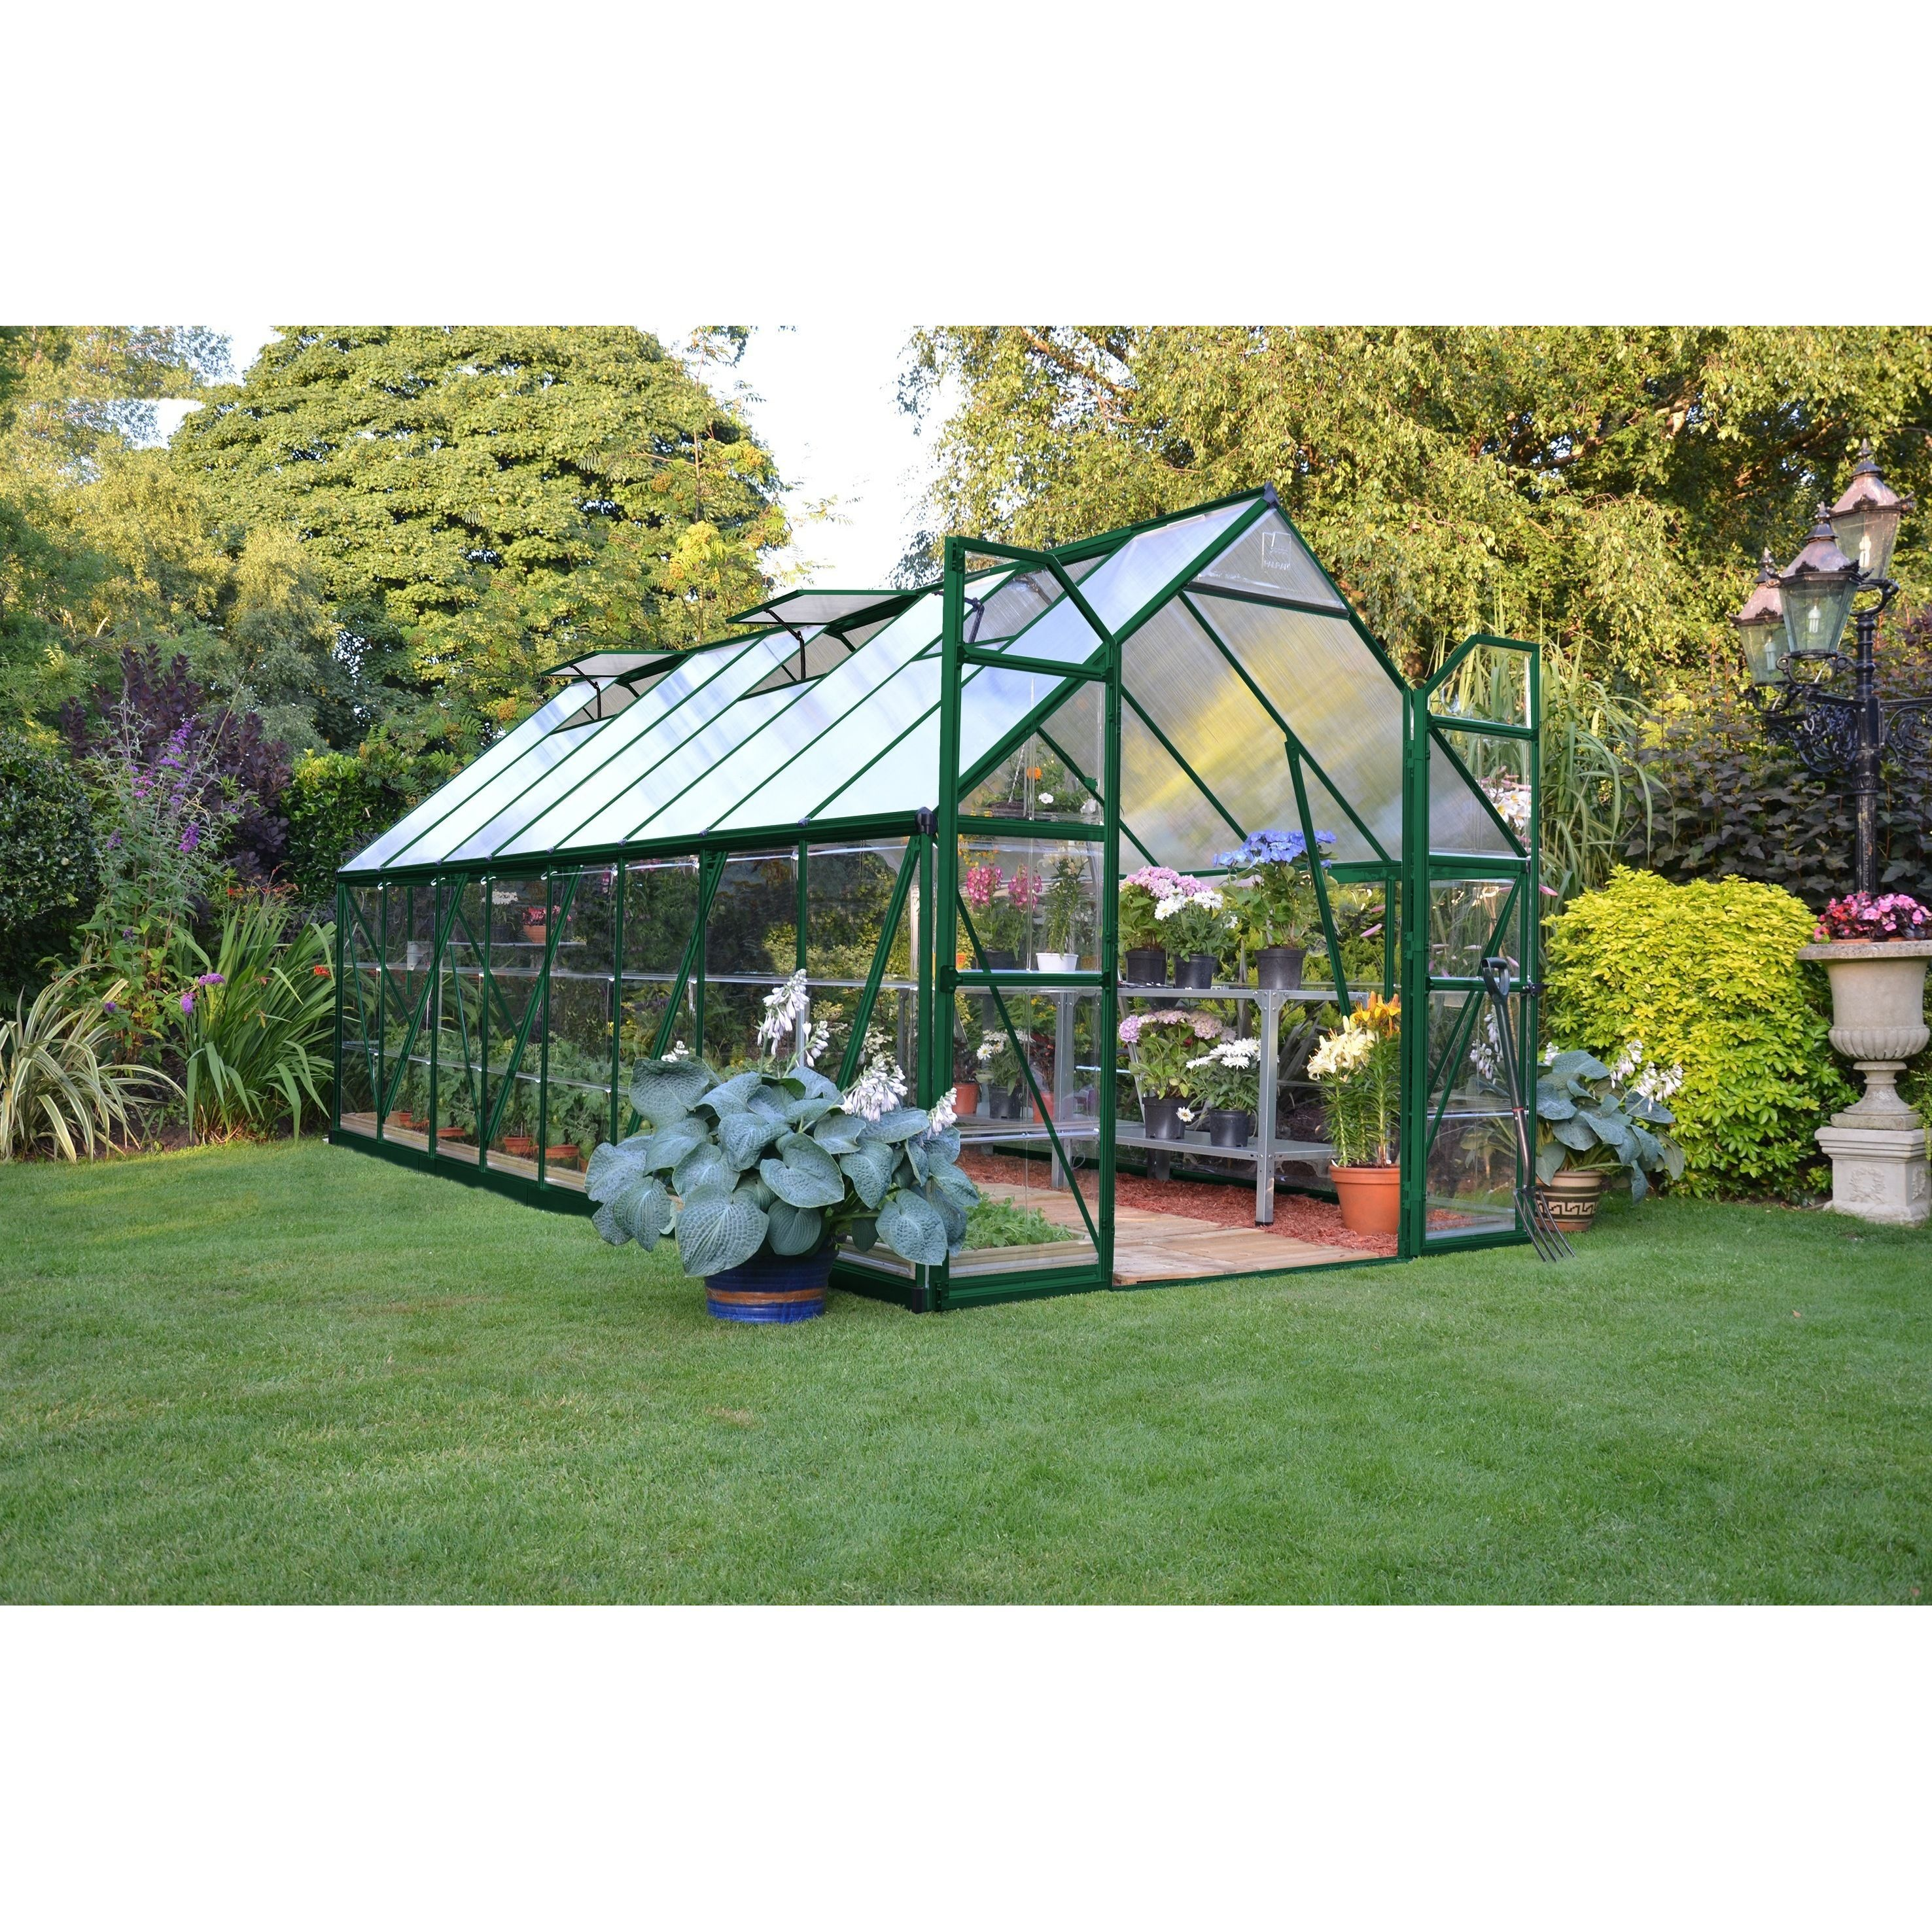 Enjoy this wonderful Green Balance Greenhouse It features two 2